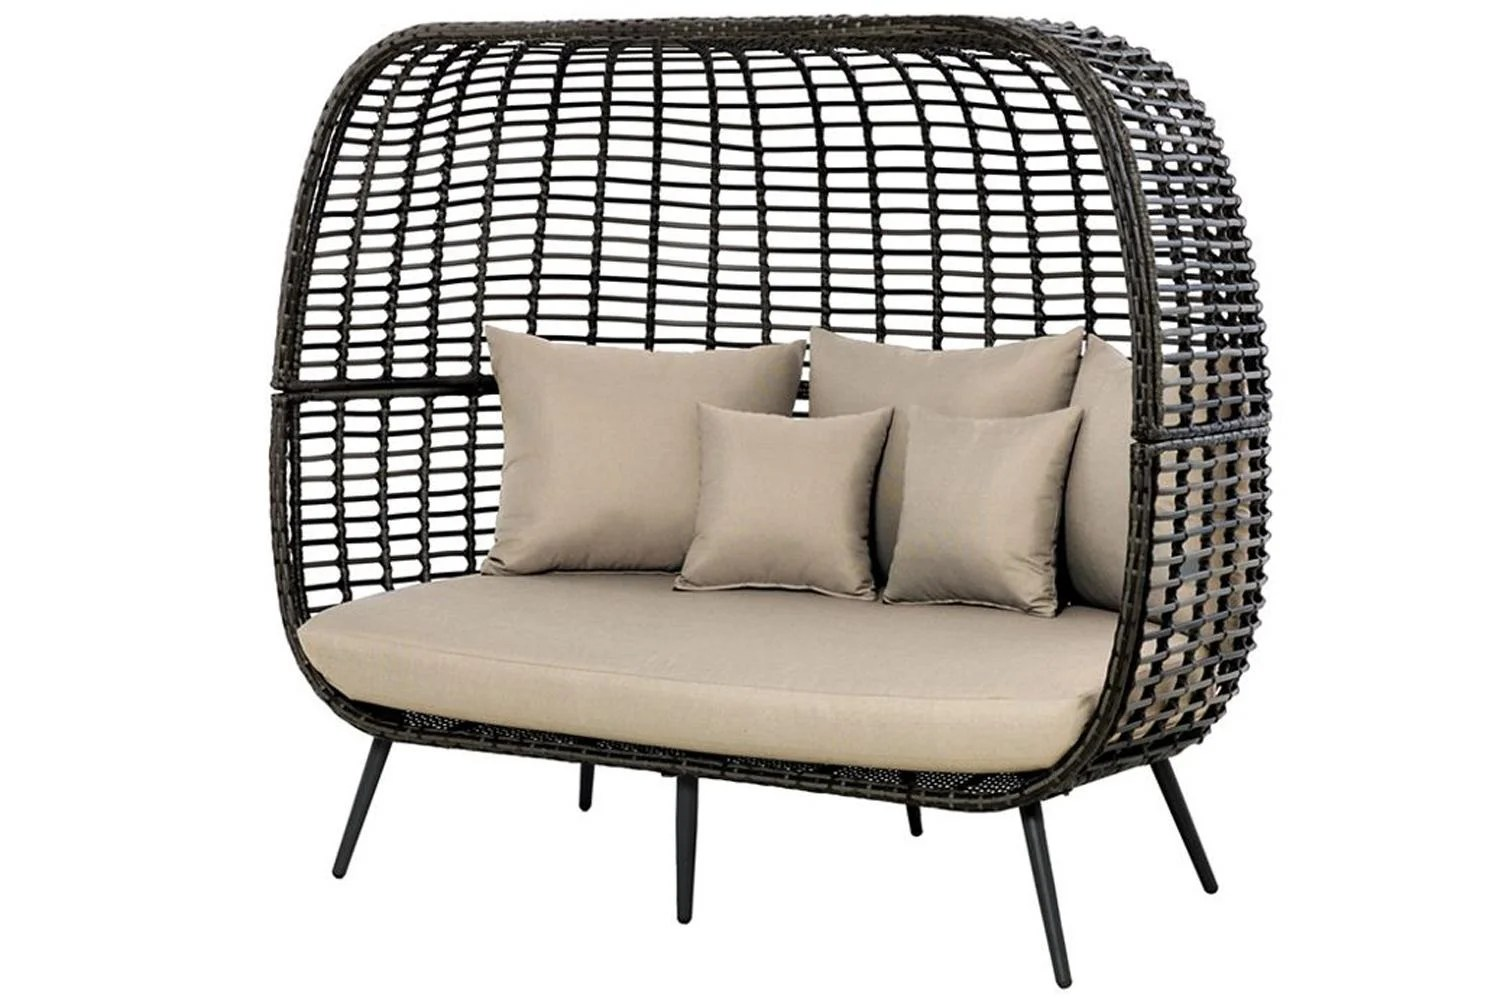 Best Garden Furniture Sales Rattan Tables And Chairs And The Best - Garden Furniture Clearance Debenhams